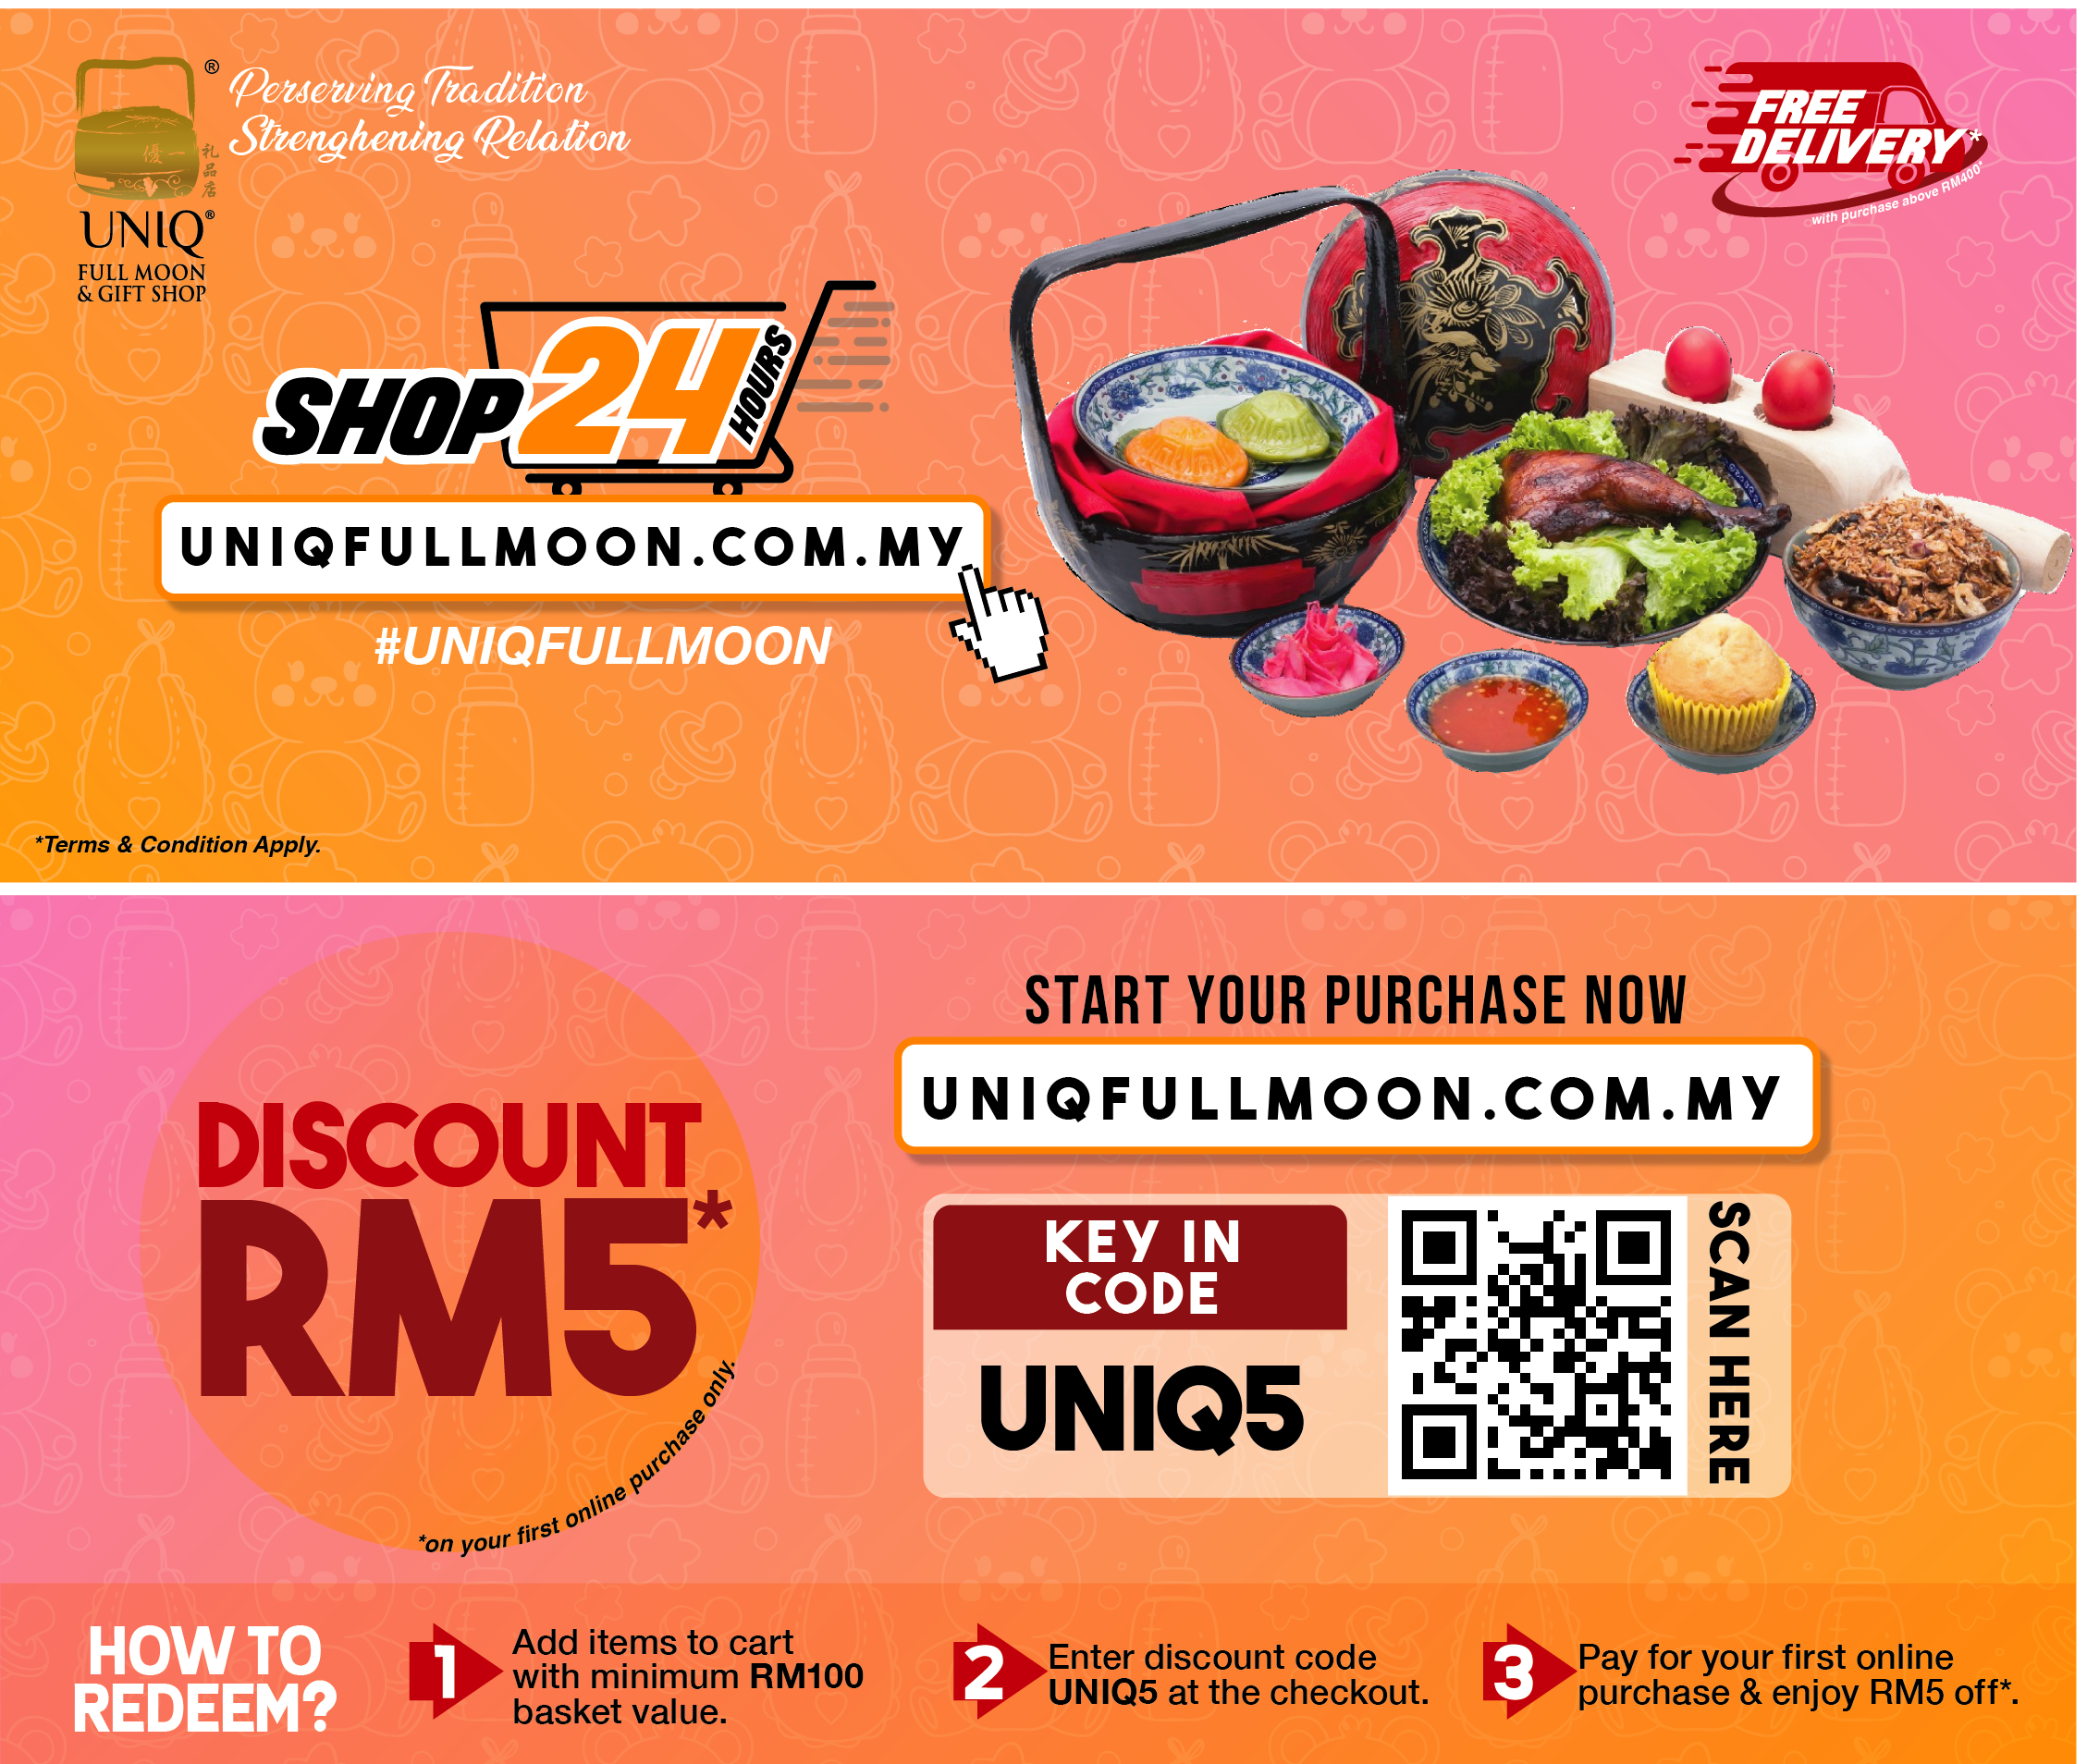 DISCOUNT RM5 FOR FIRST ONLINE PURCHASE